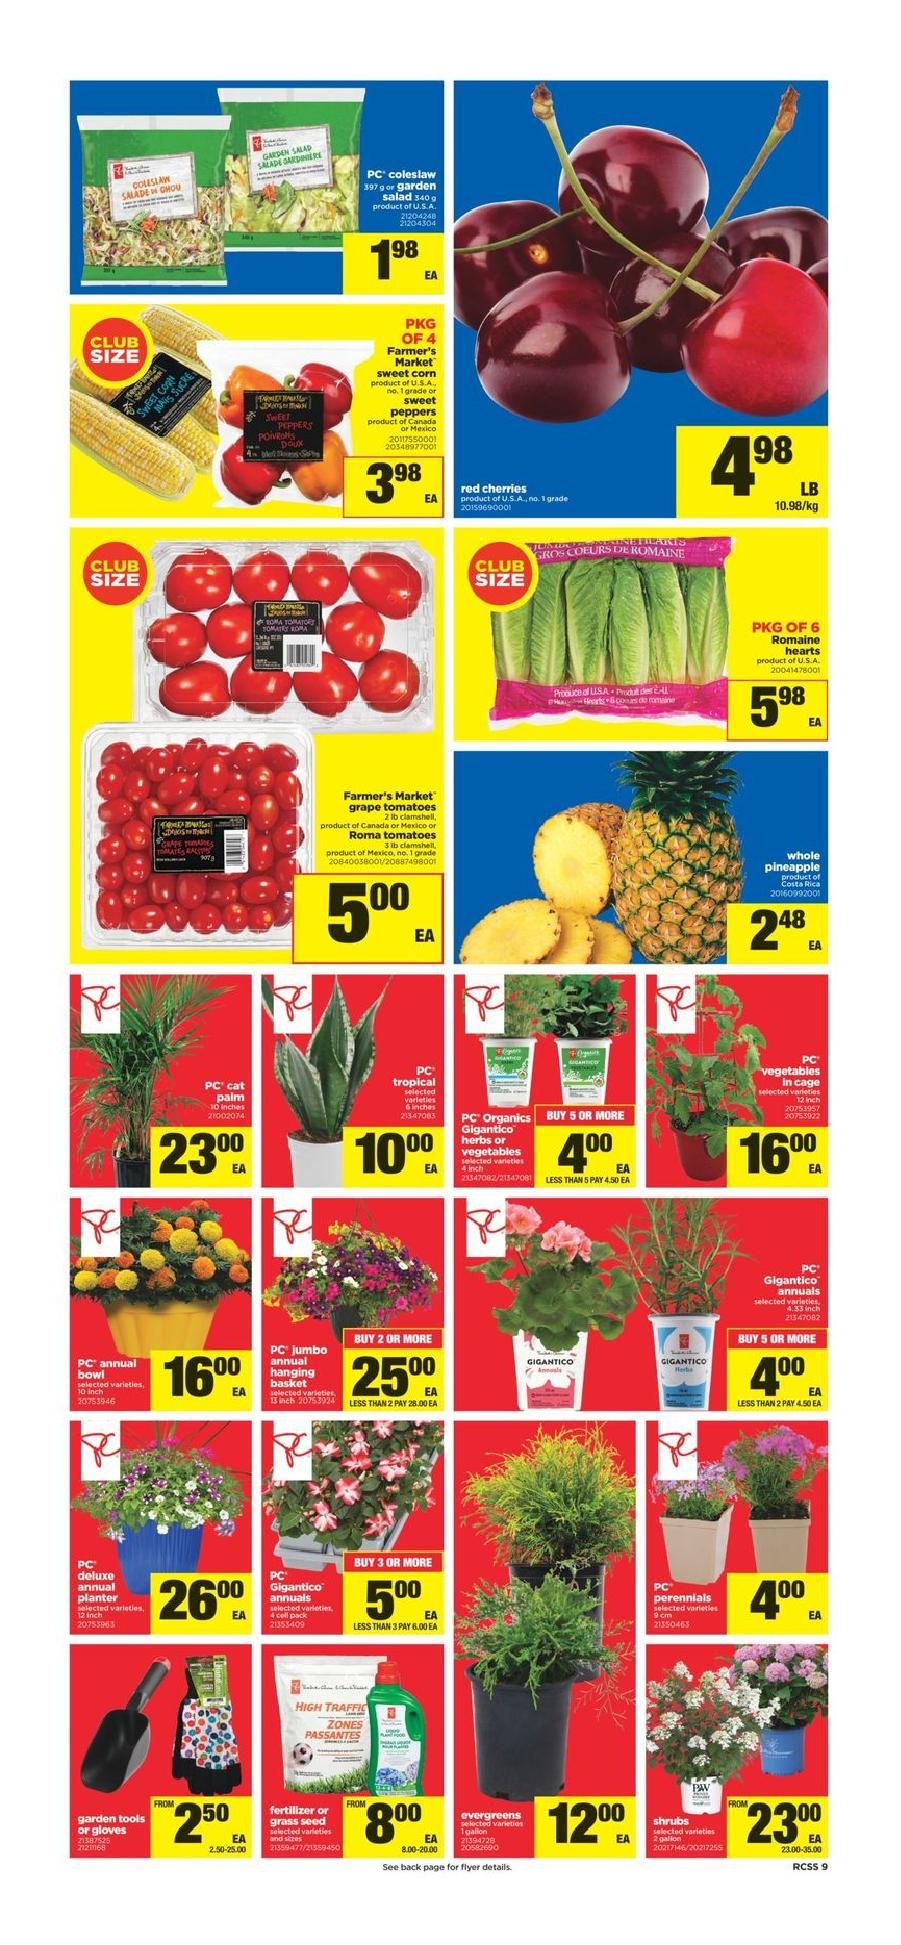 11 Superstore ON Flyer May 20 May 26 2021